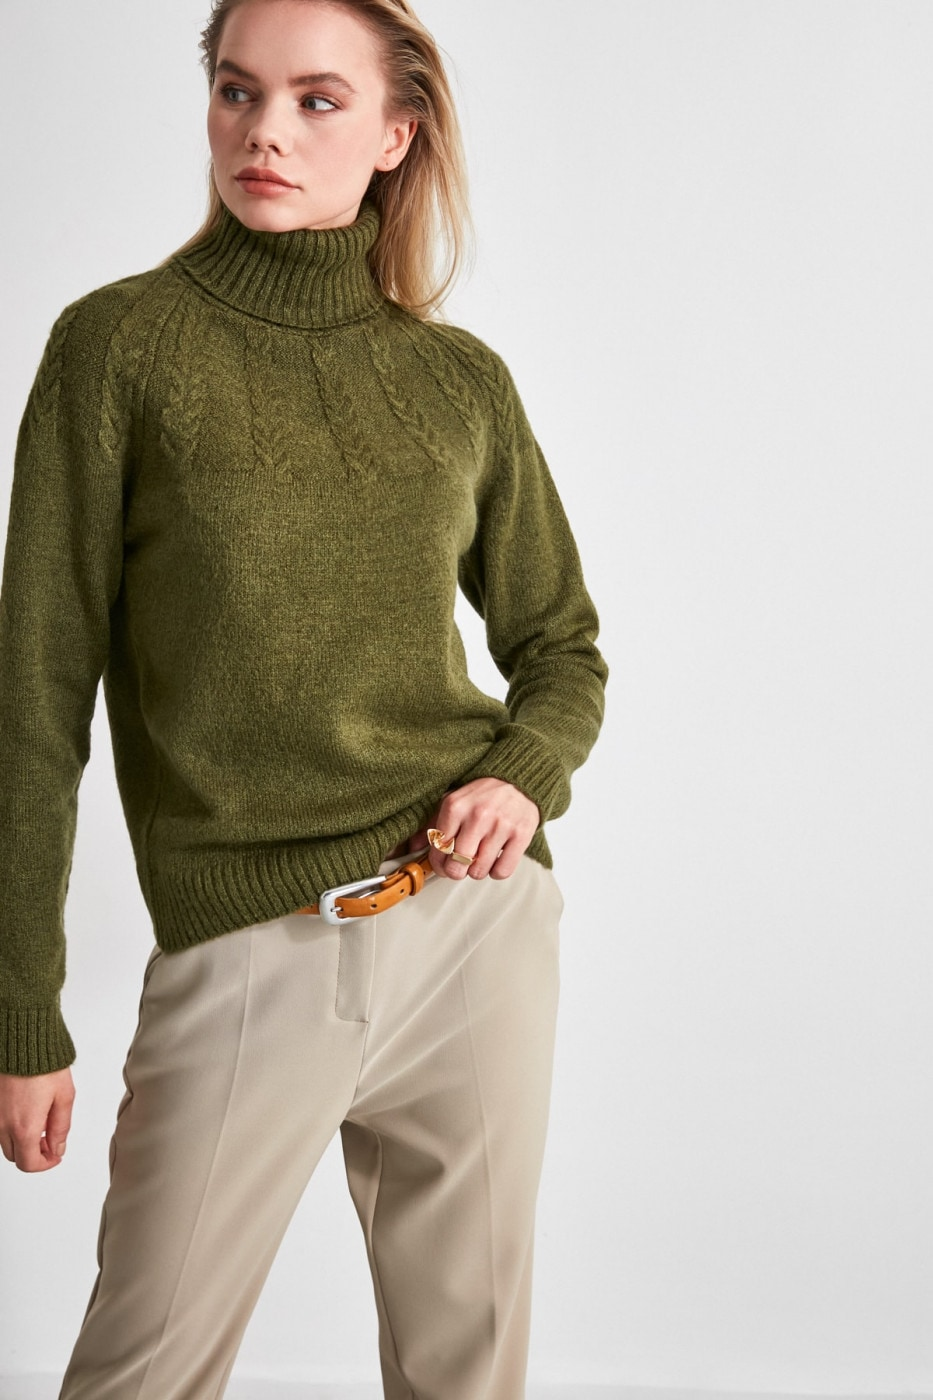 Trendyol Khaki Knitting Detailed Knitwear Sweater